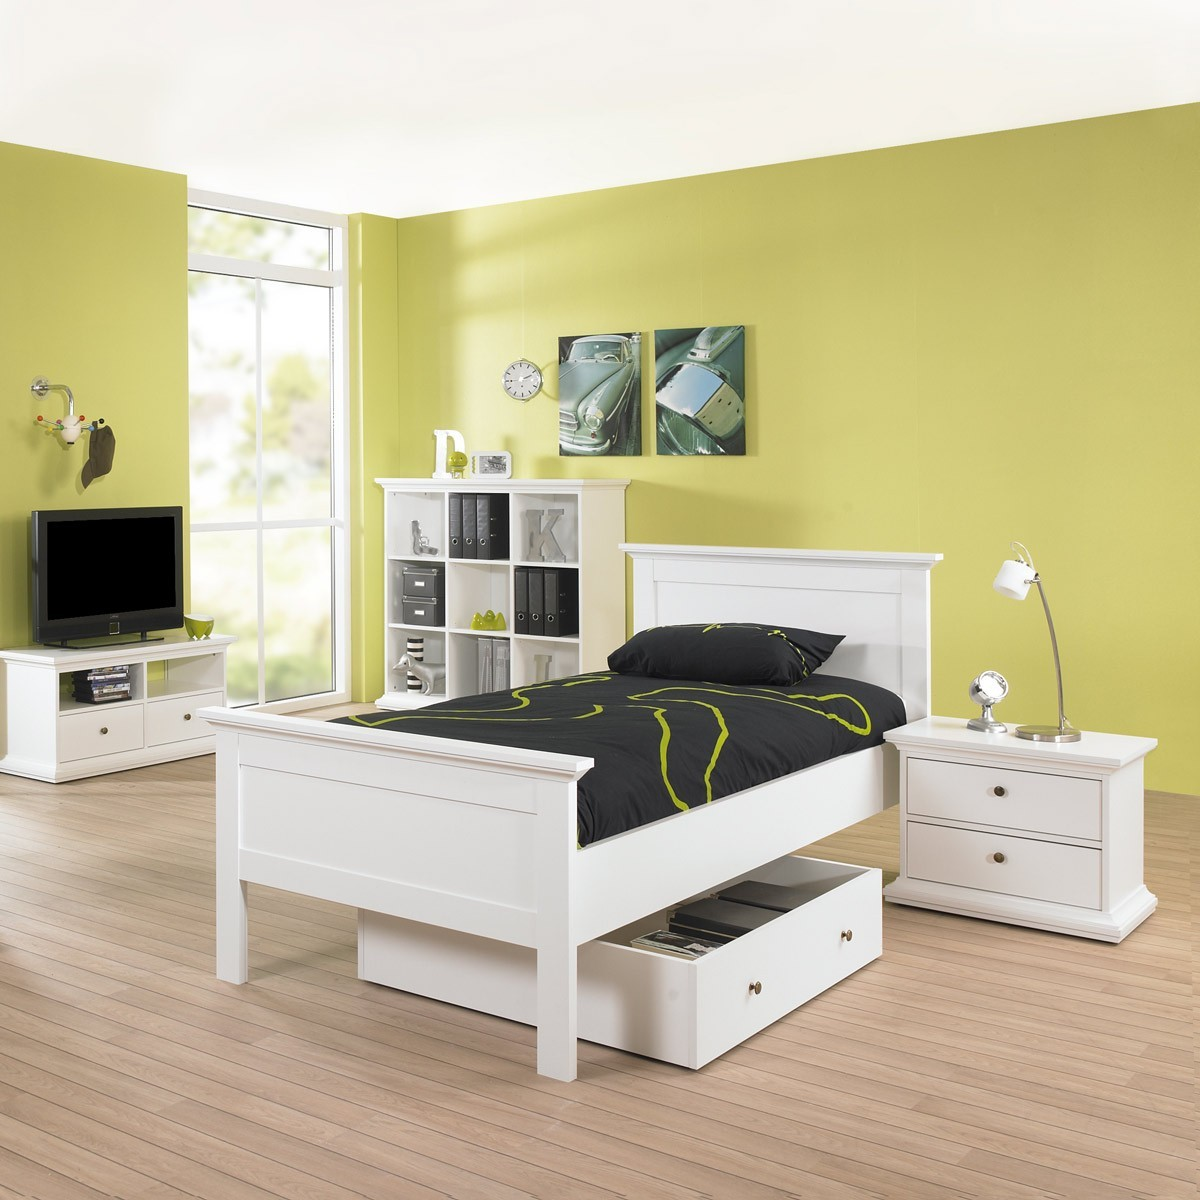 bett weis hochglanz 90x200 beste bildideen zu hause design. Black Bedroom Furniture Sets. Home Design Ideas